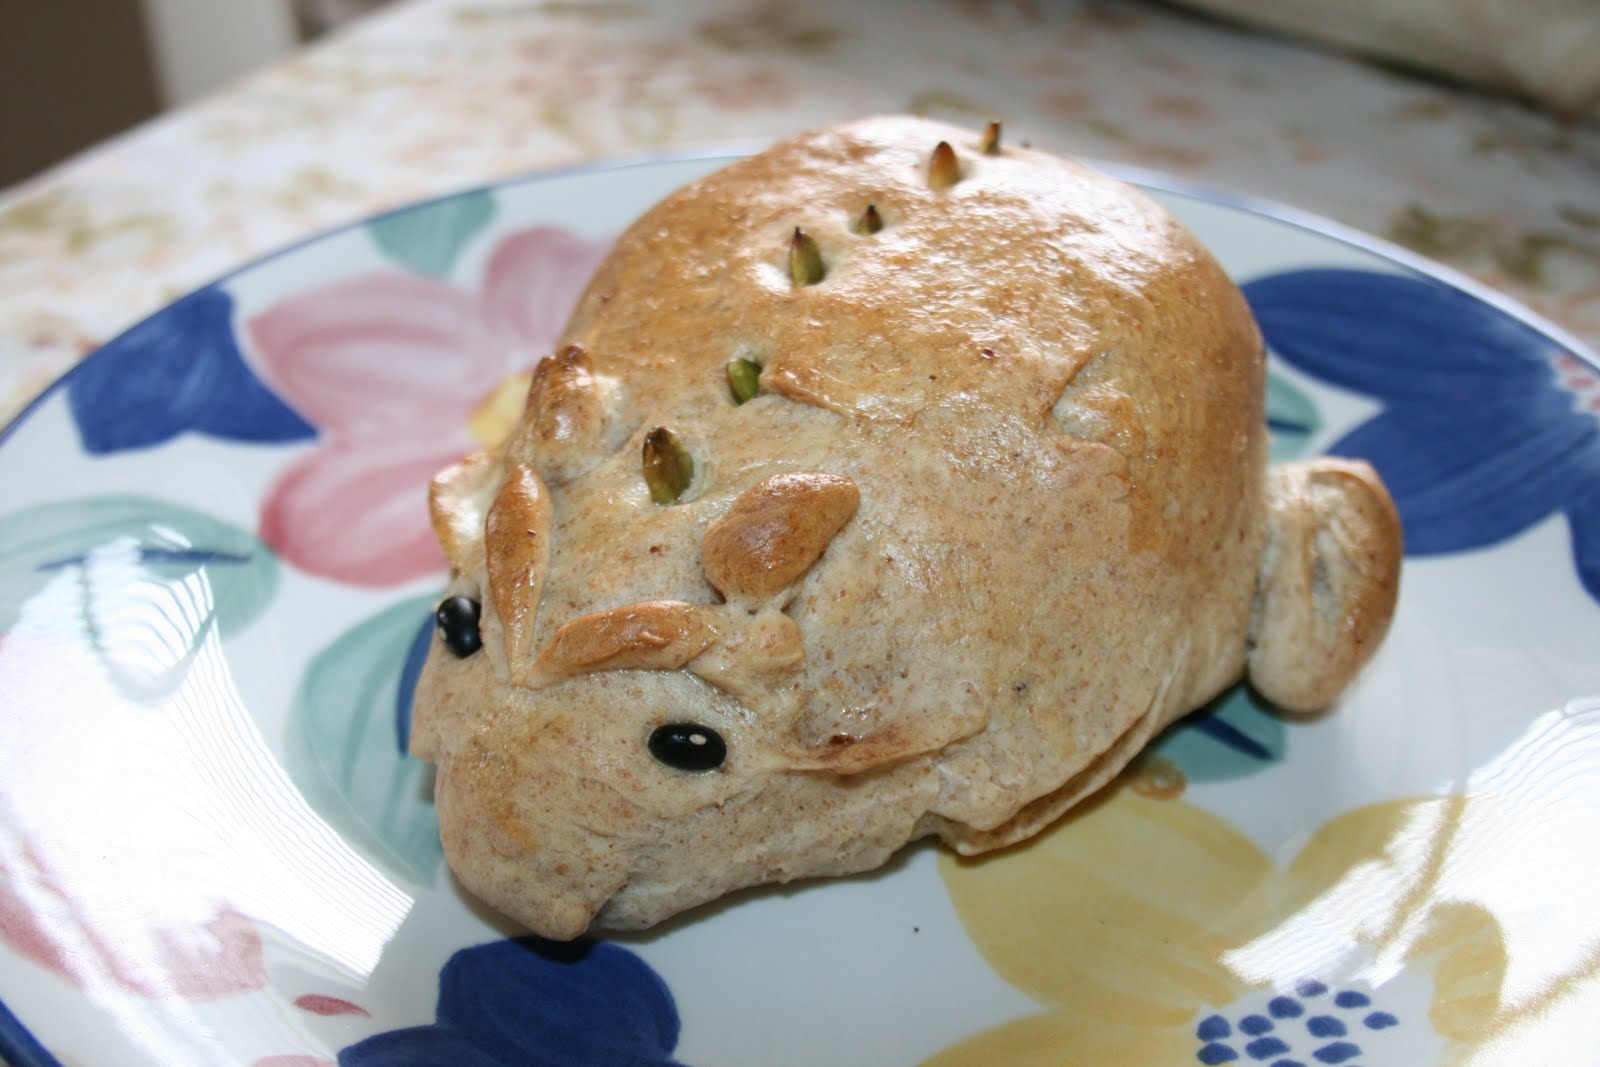 Lenorita: Dragon Bread